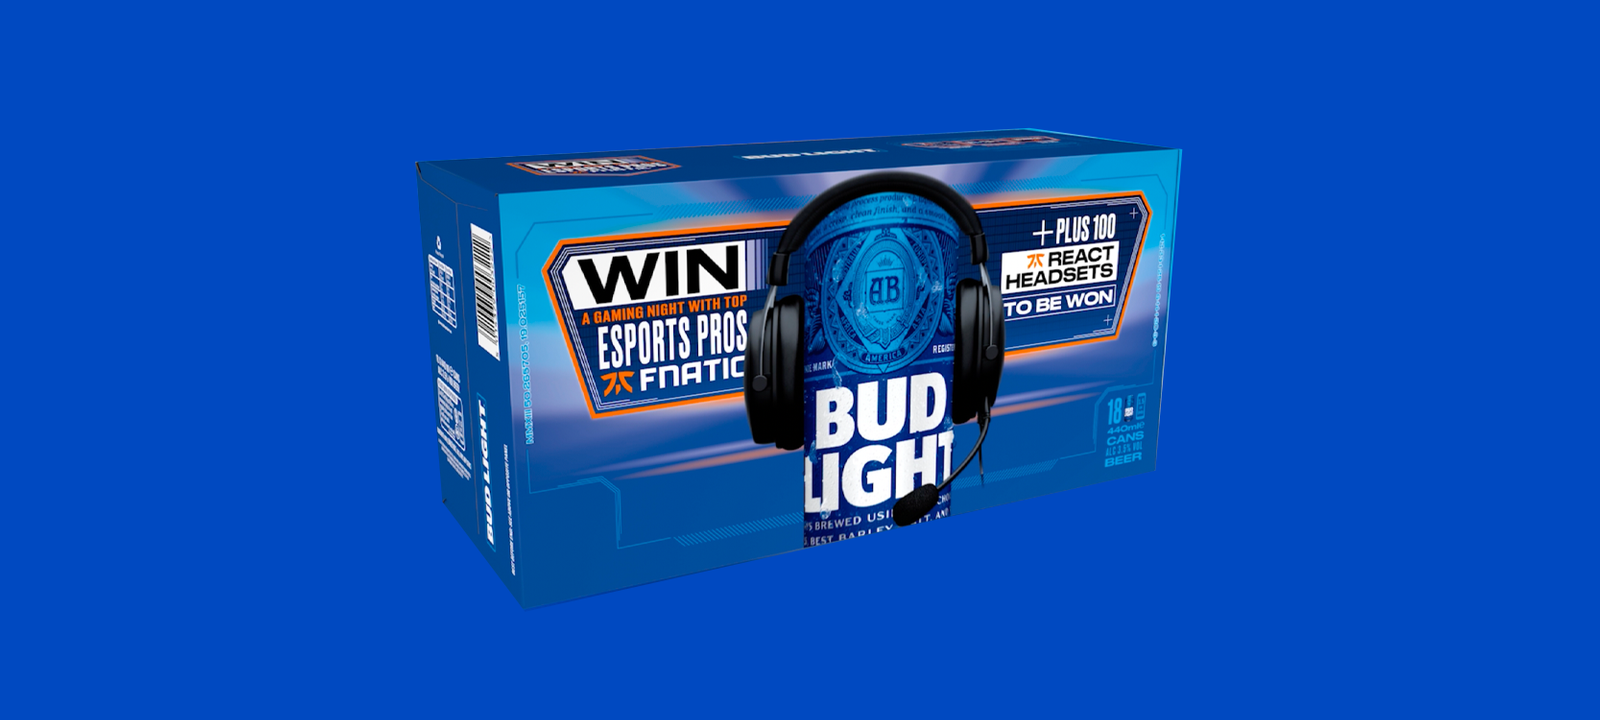 A fnatic sponsored crate of bud light